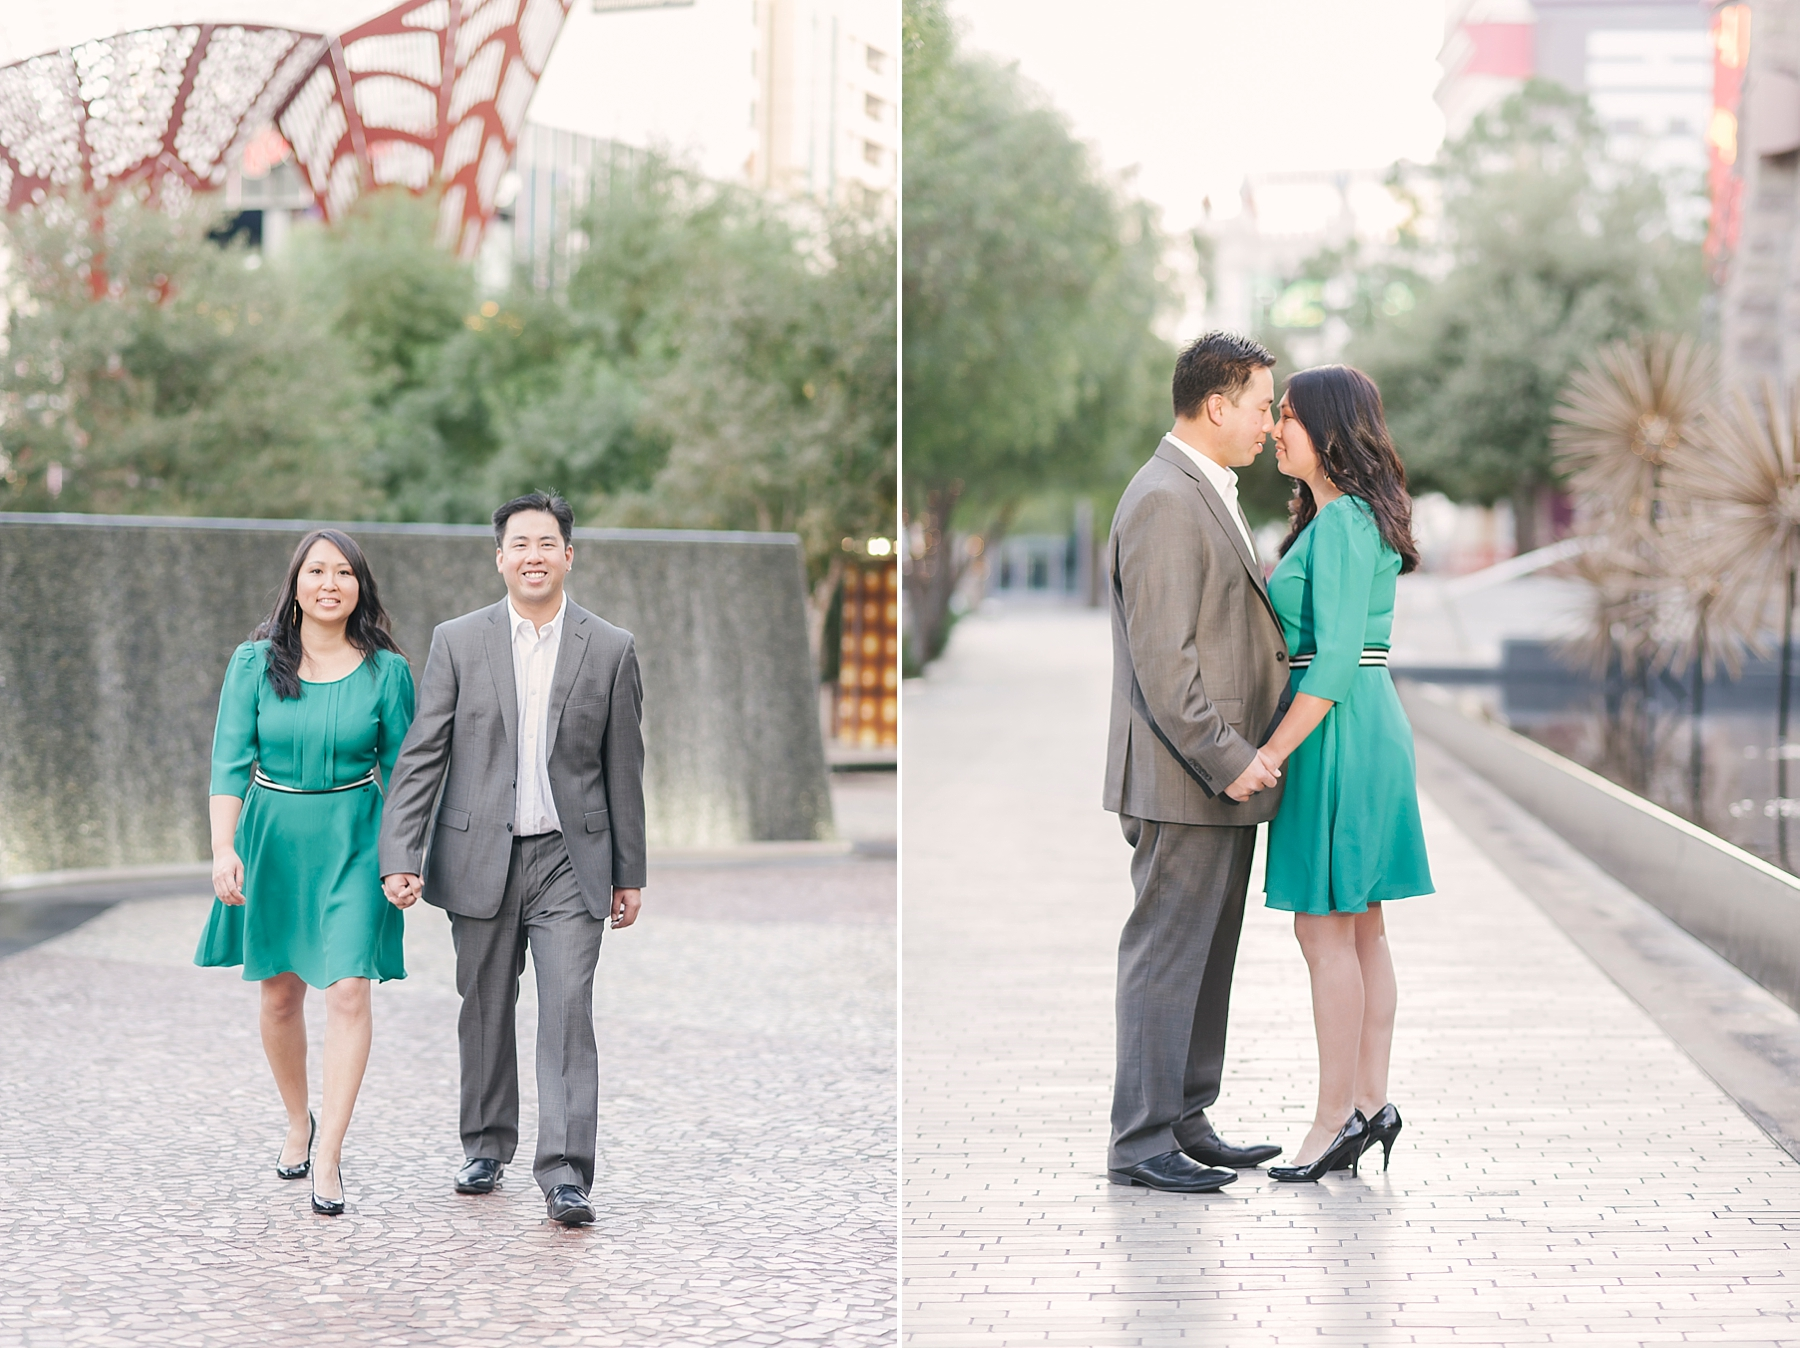 las-vegas-engagement-destination-photographers-04.jpg